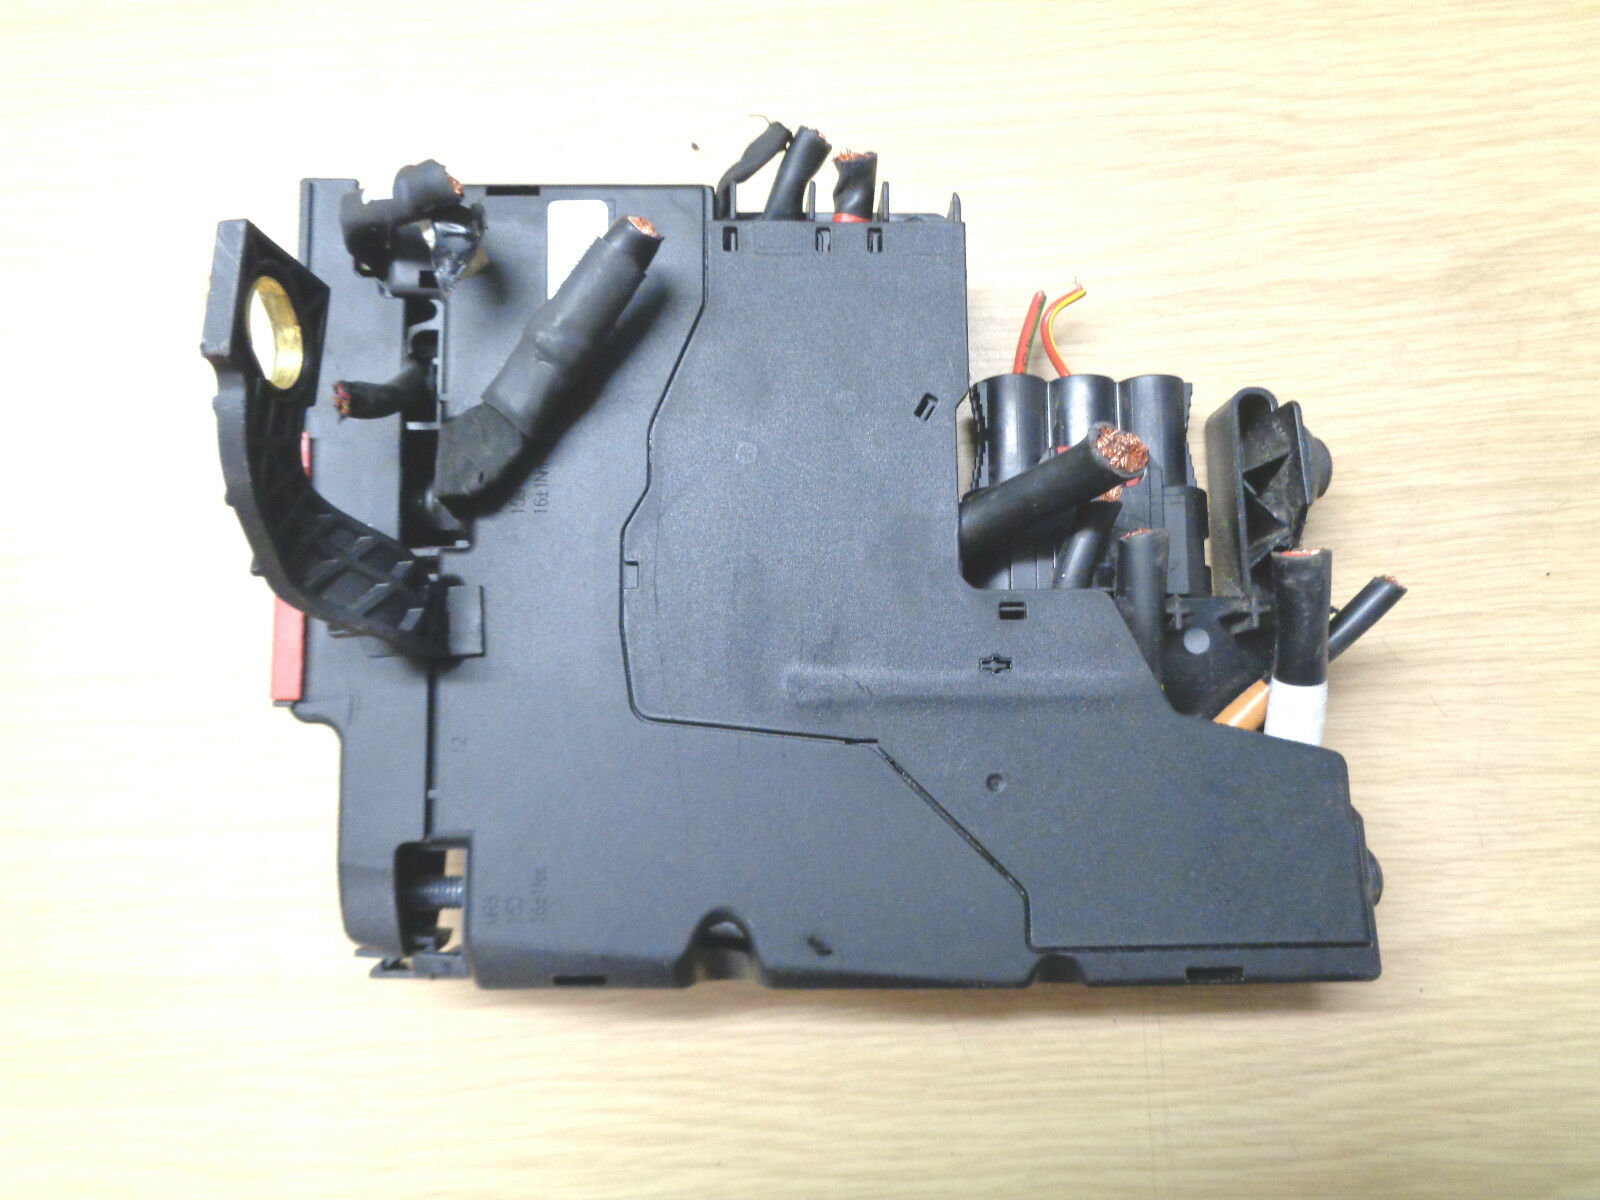 Mercedes Benz E Class Amg Fuse Box A2125400581 A 212 540 05 81 2003 E320 1 Of 1only Available